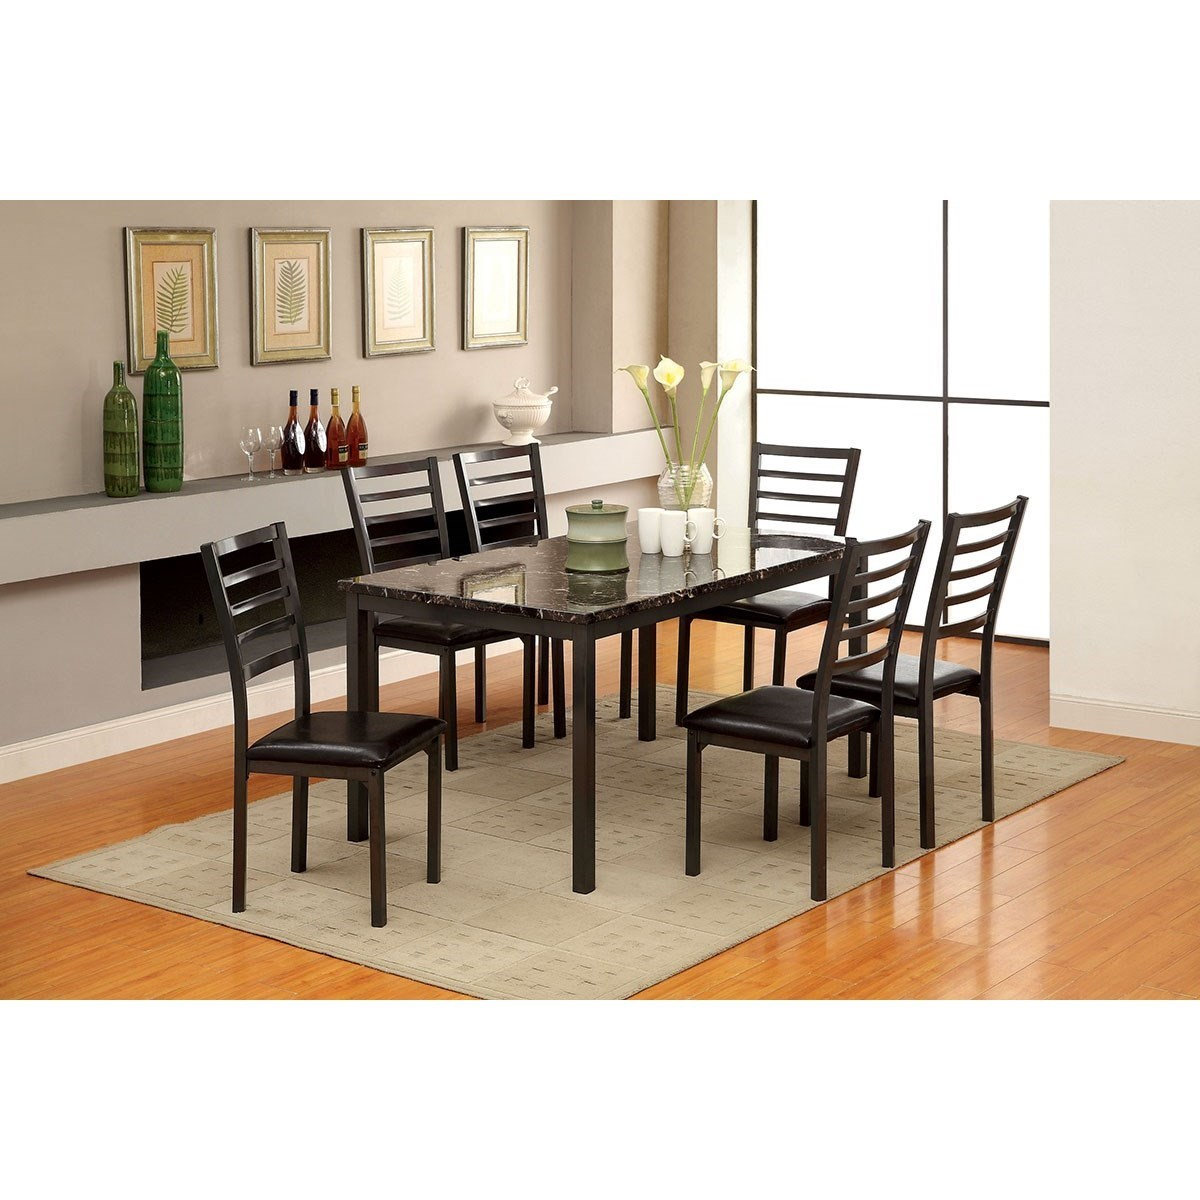 Furniture Of America Colman Table + 6 Assembled Chairs